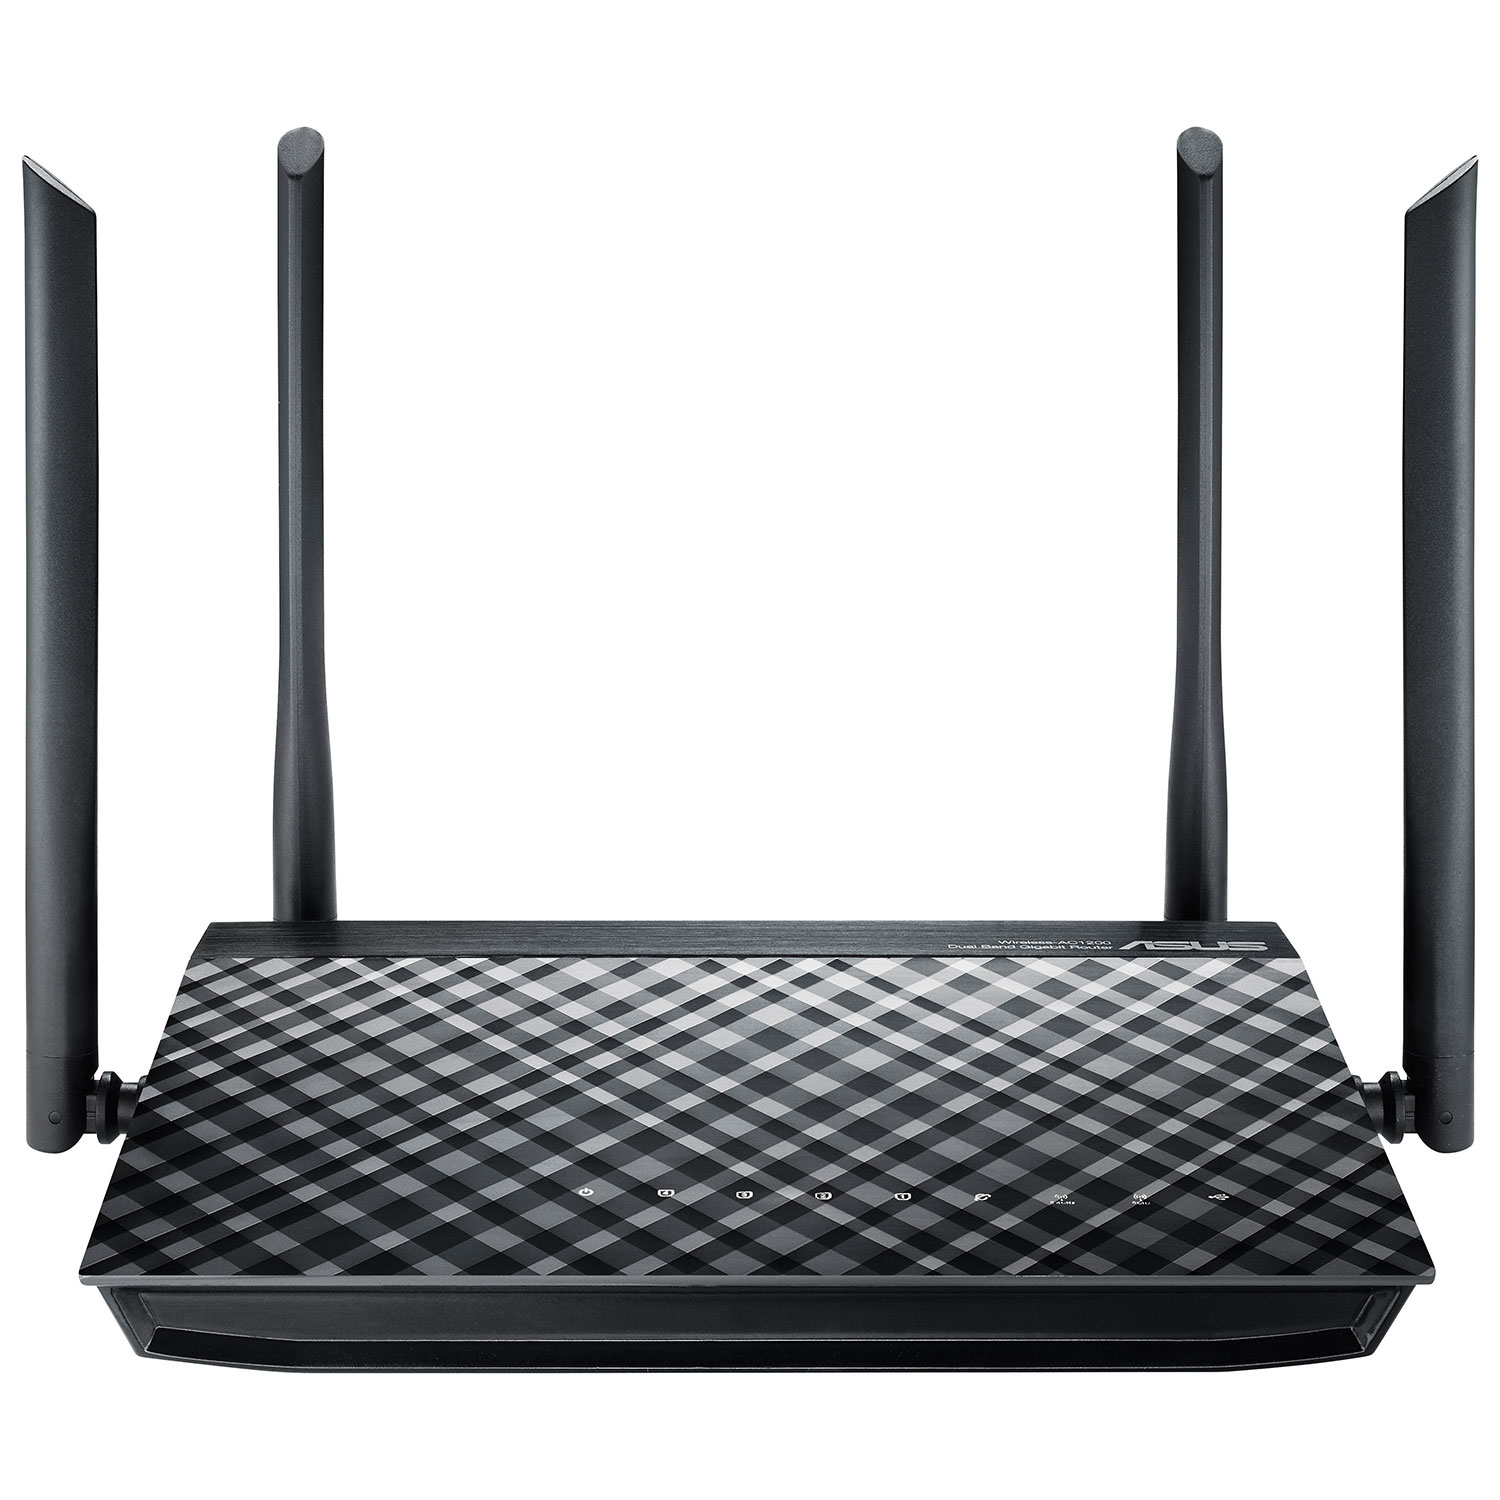 Router mobile et modems - Asus Wireless Ac1200 Dual Band Router Rt Ac1200